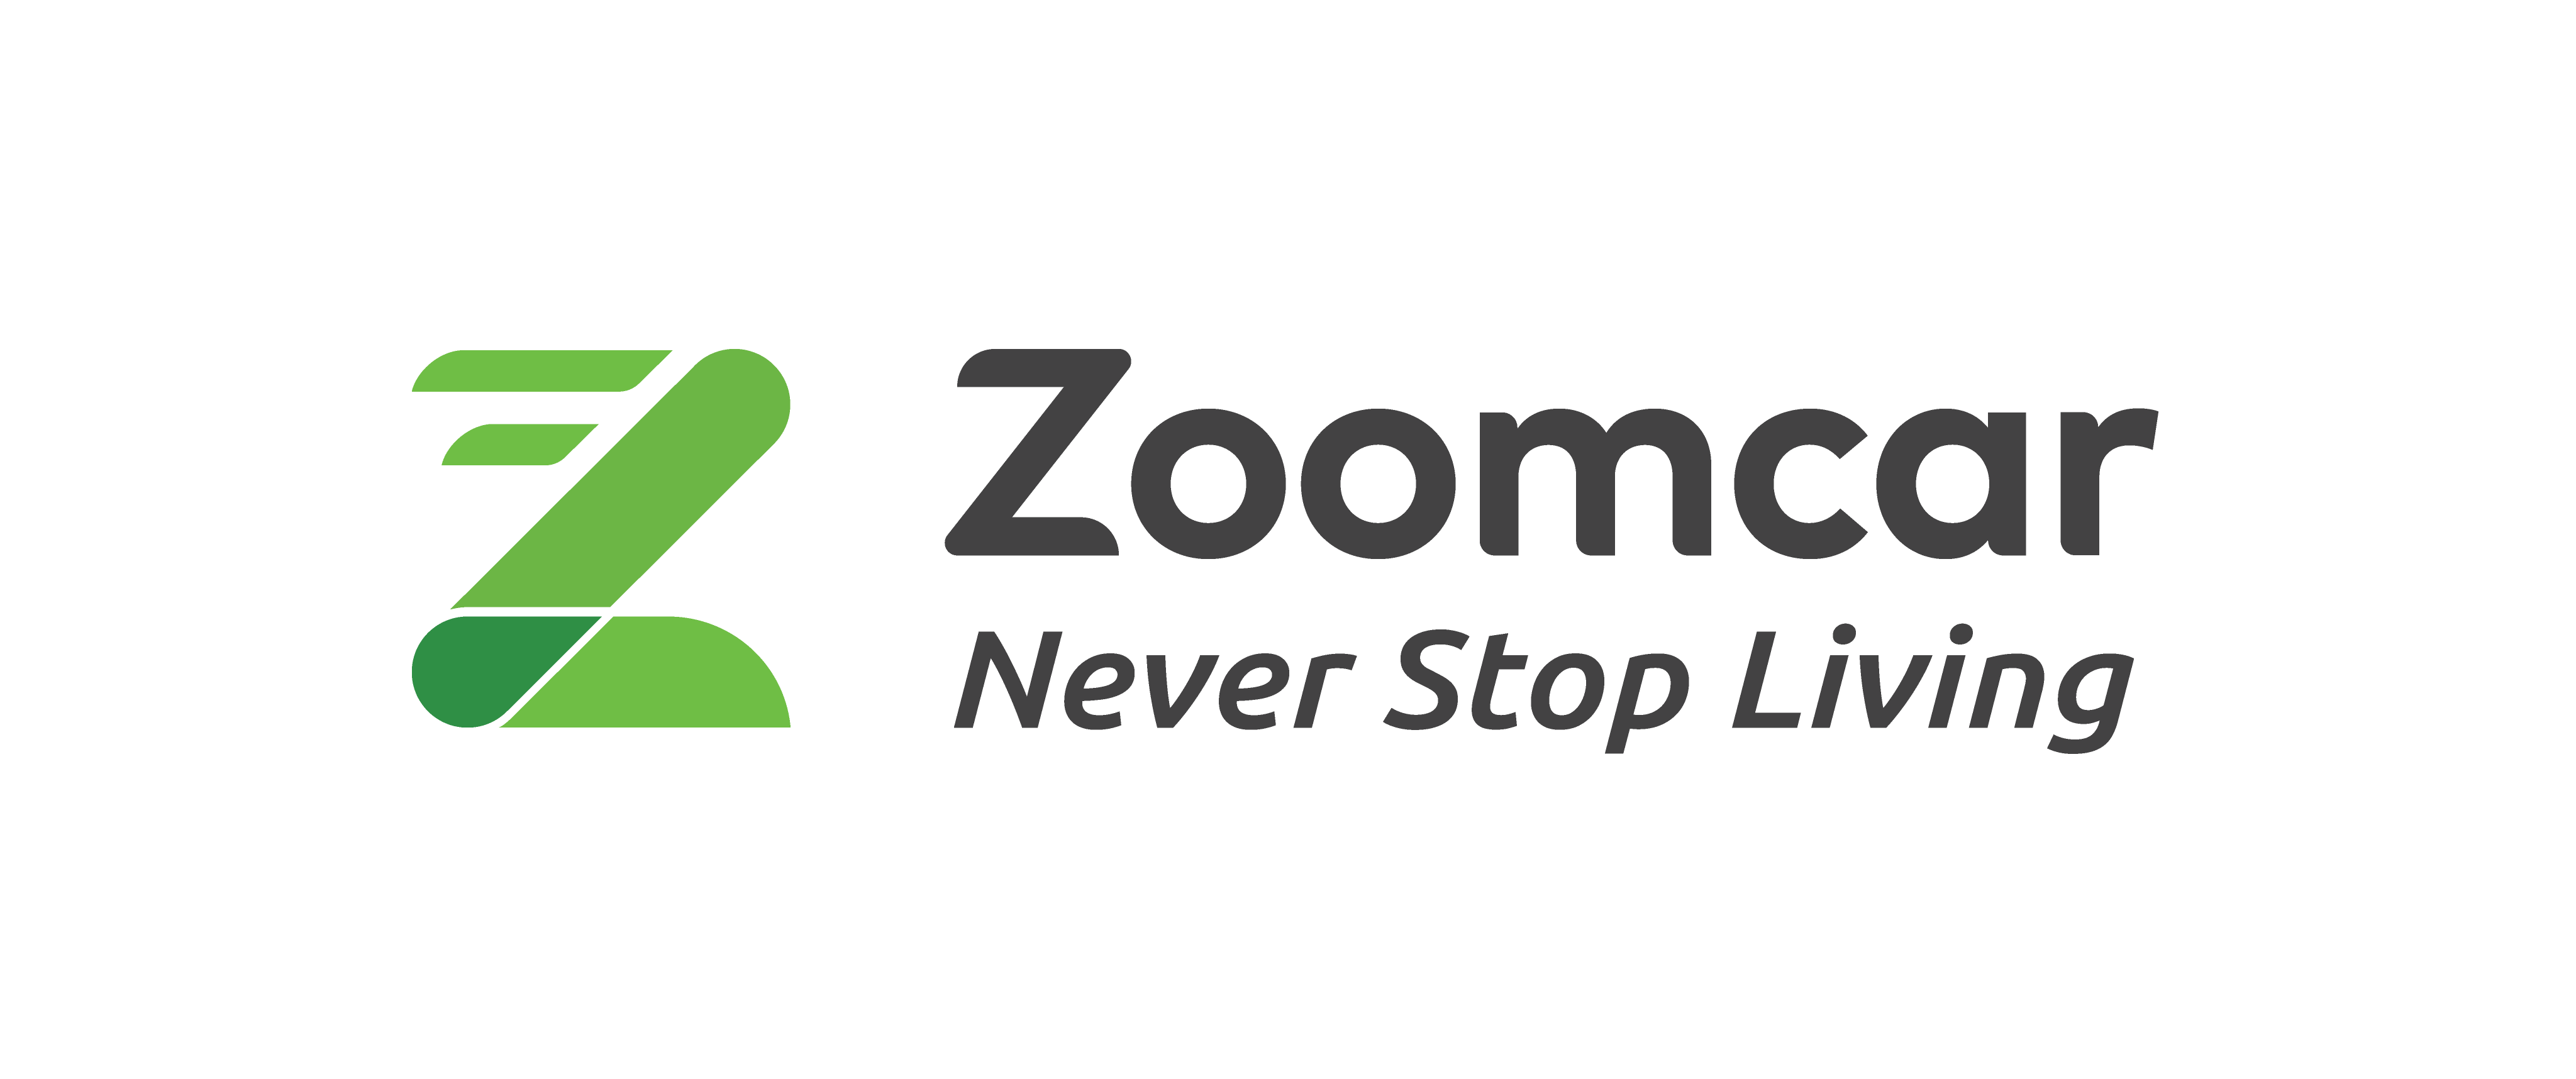 ZoomCar Coupons & Offers | Rs 2000 OFF Promo Codes